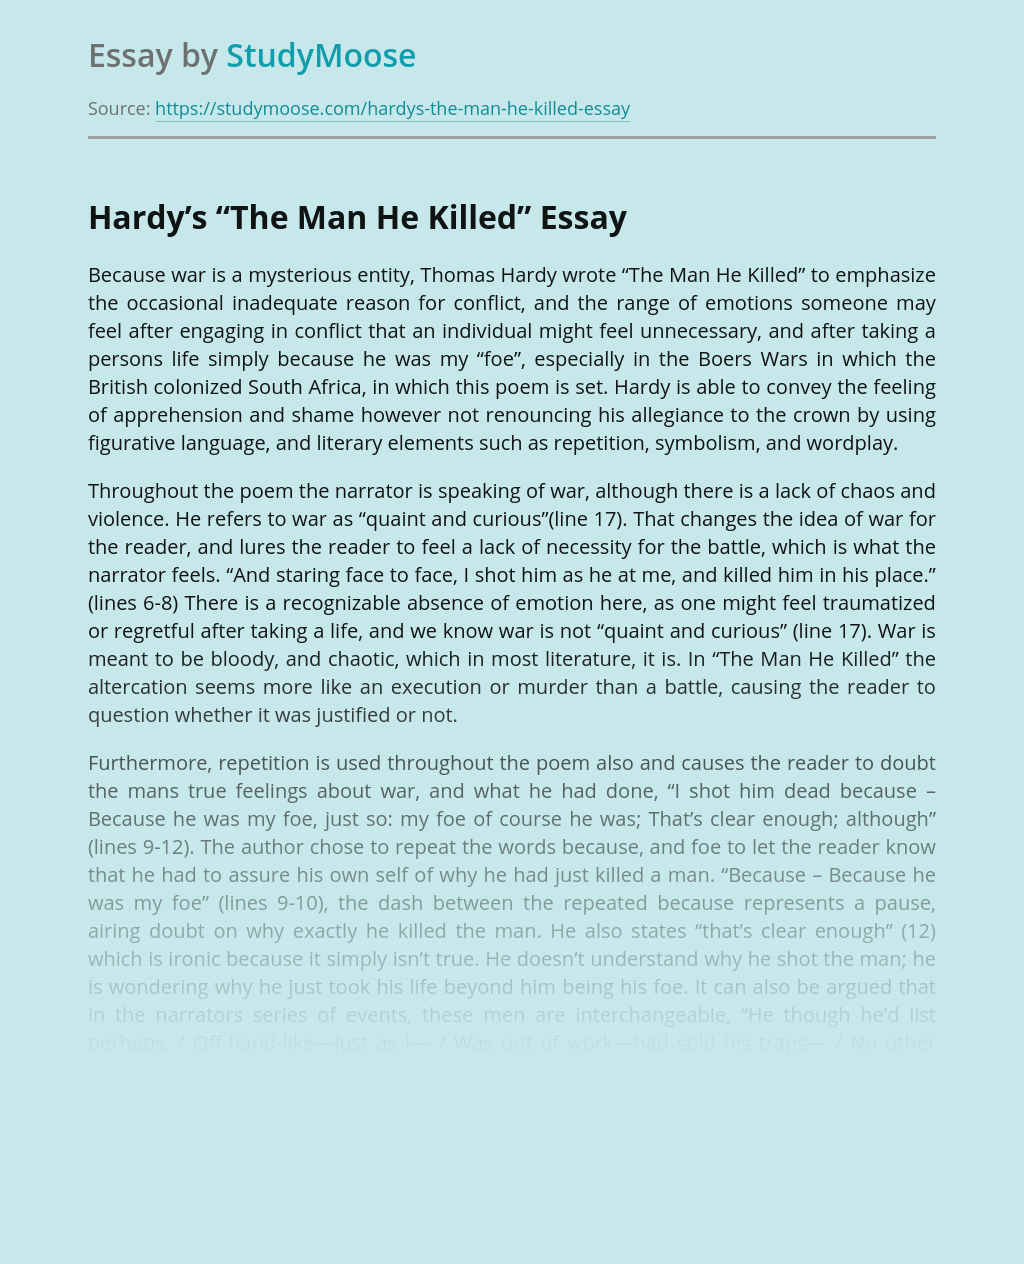 A Poem The Man He Killed by Hardy